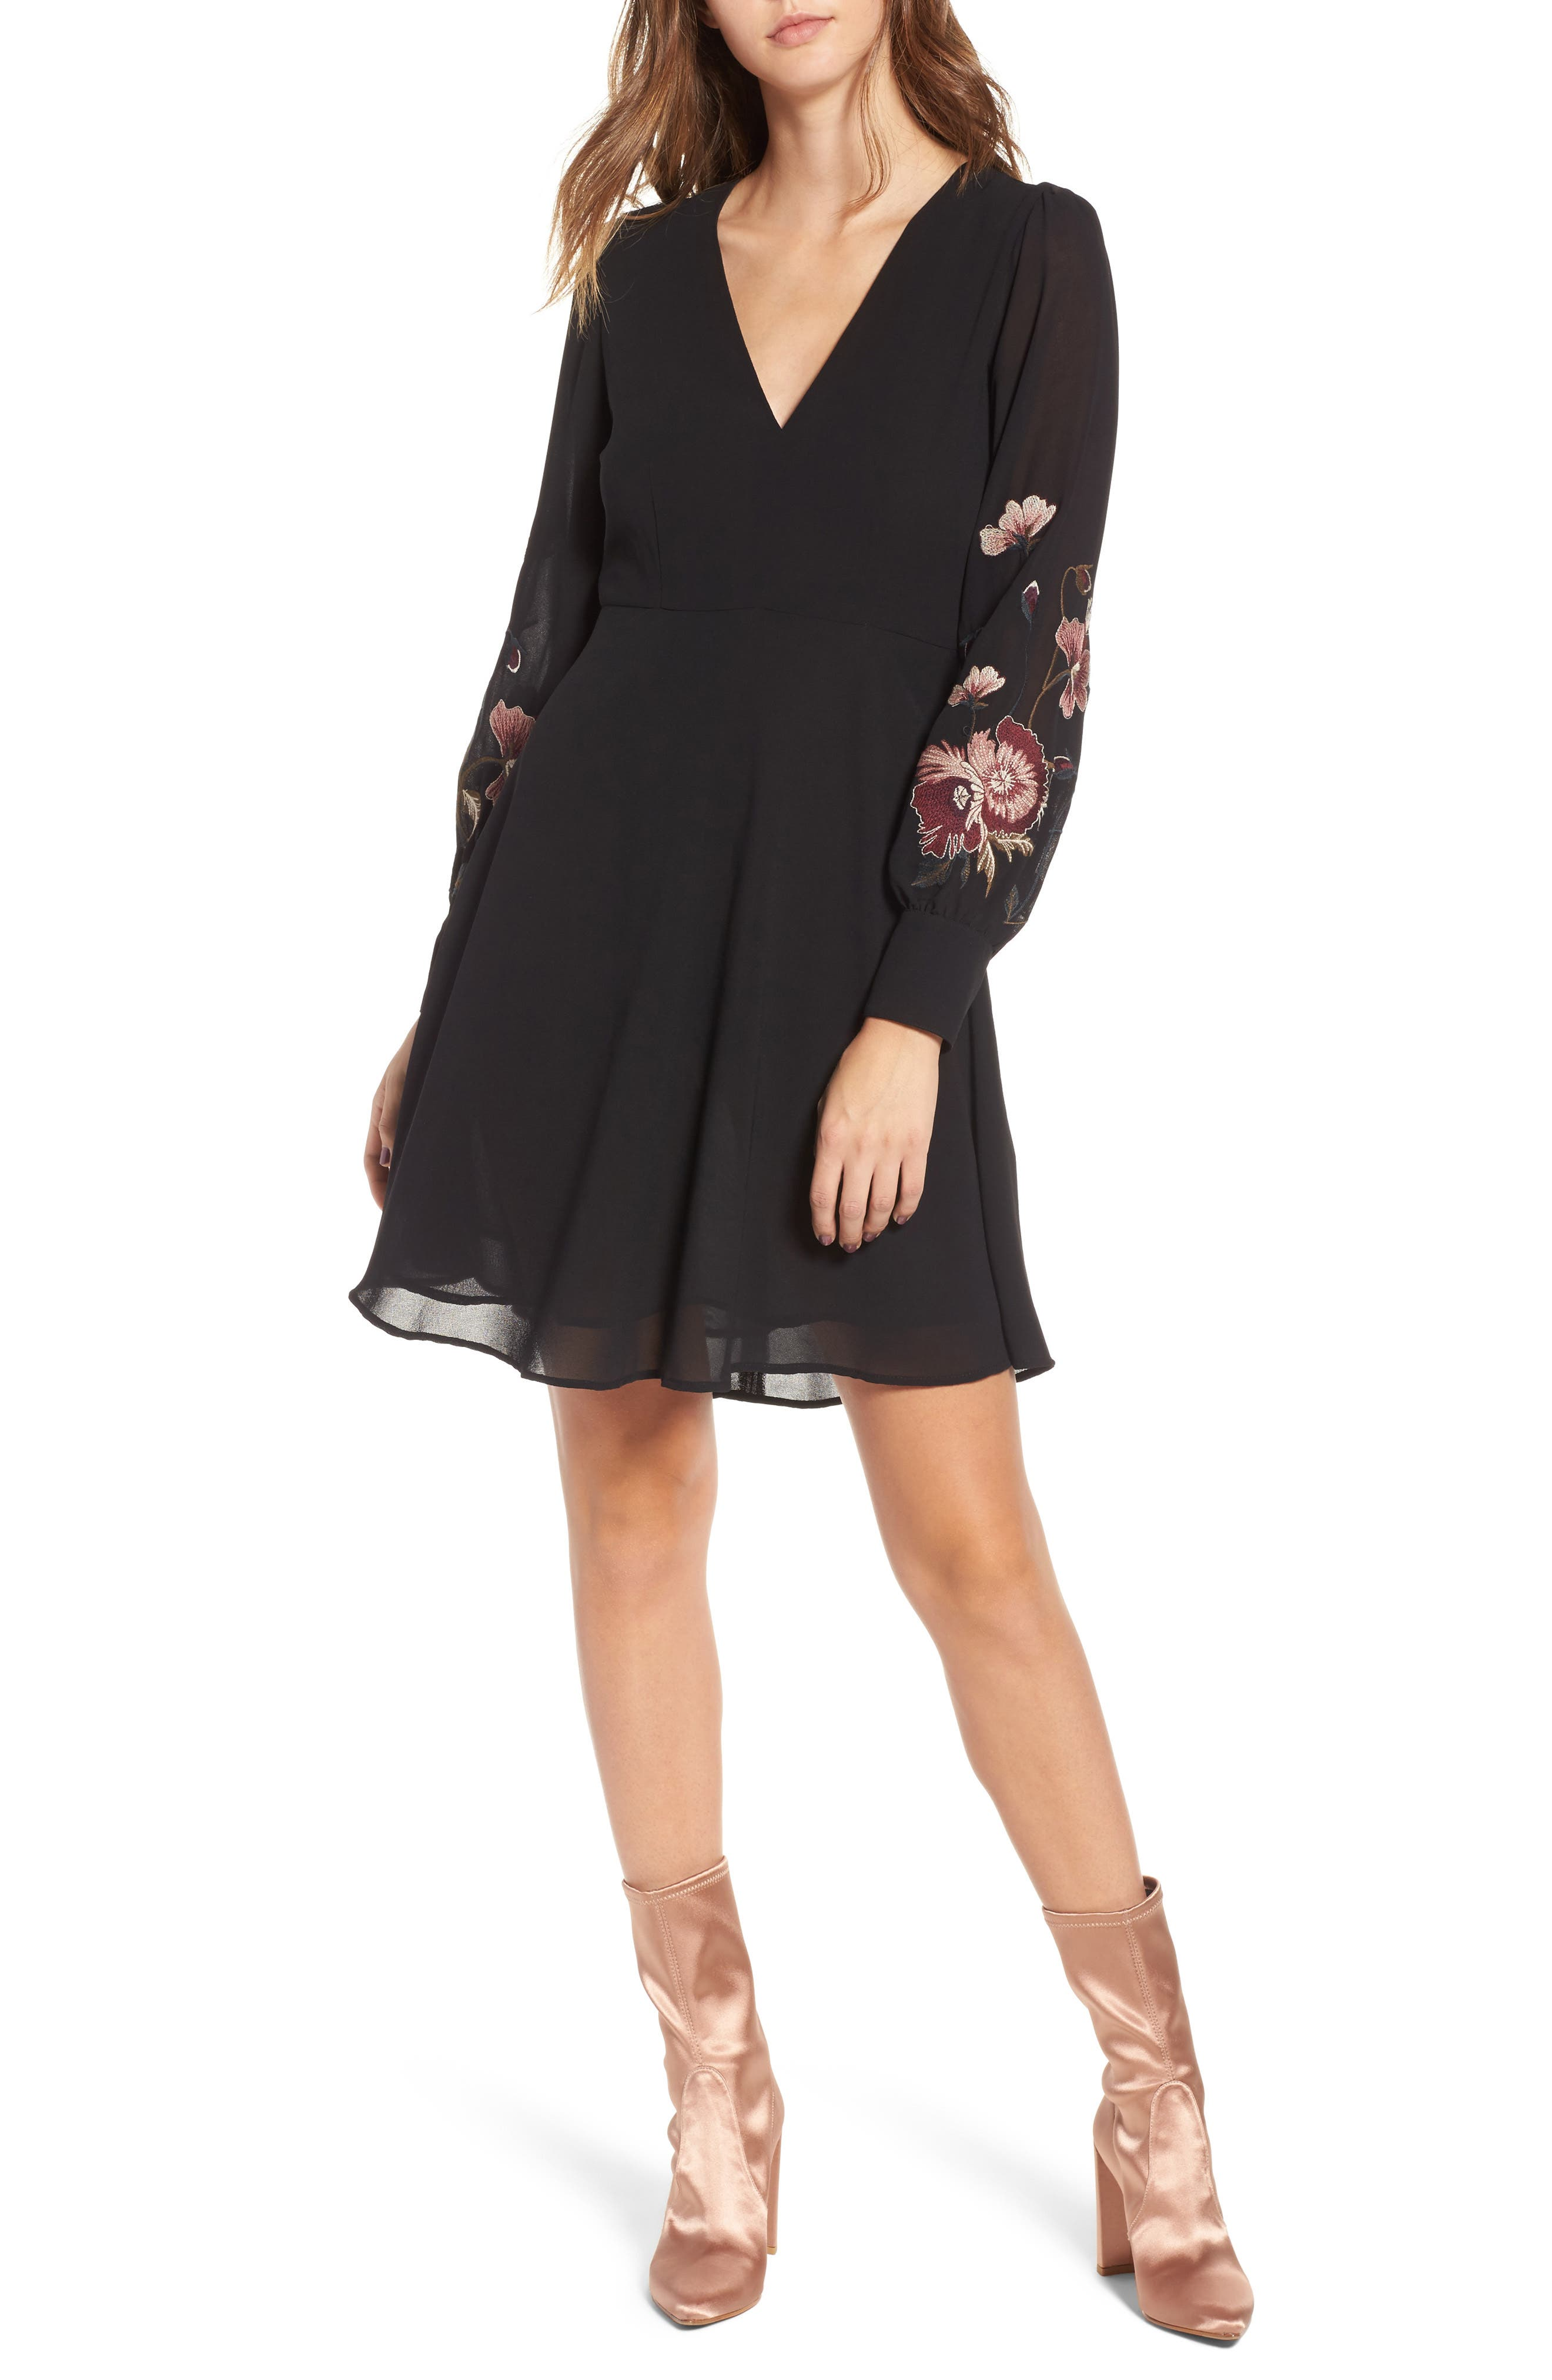 Alternate Image 1 Selected - ASTR the Label Holly Fit & Flare Dress